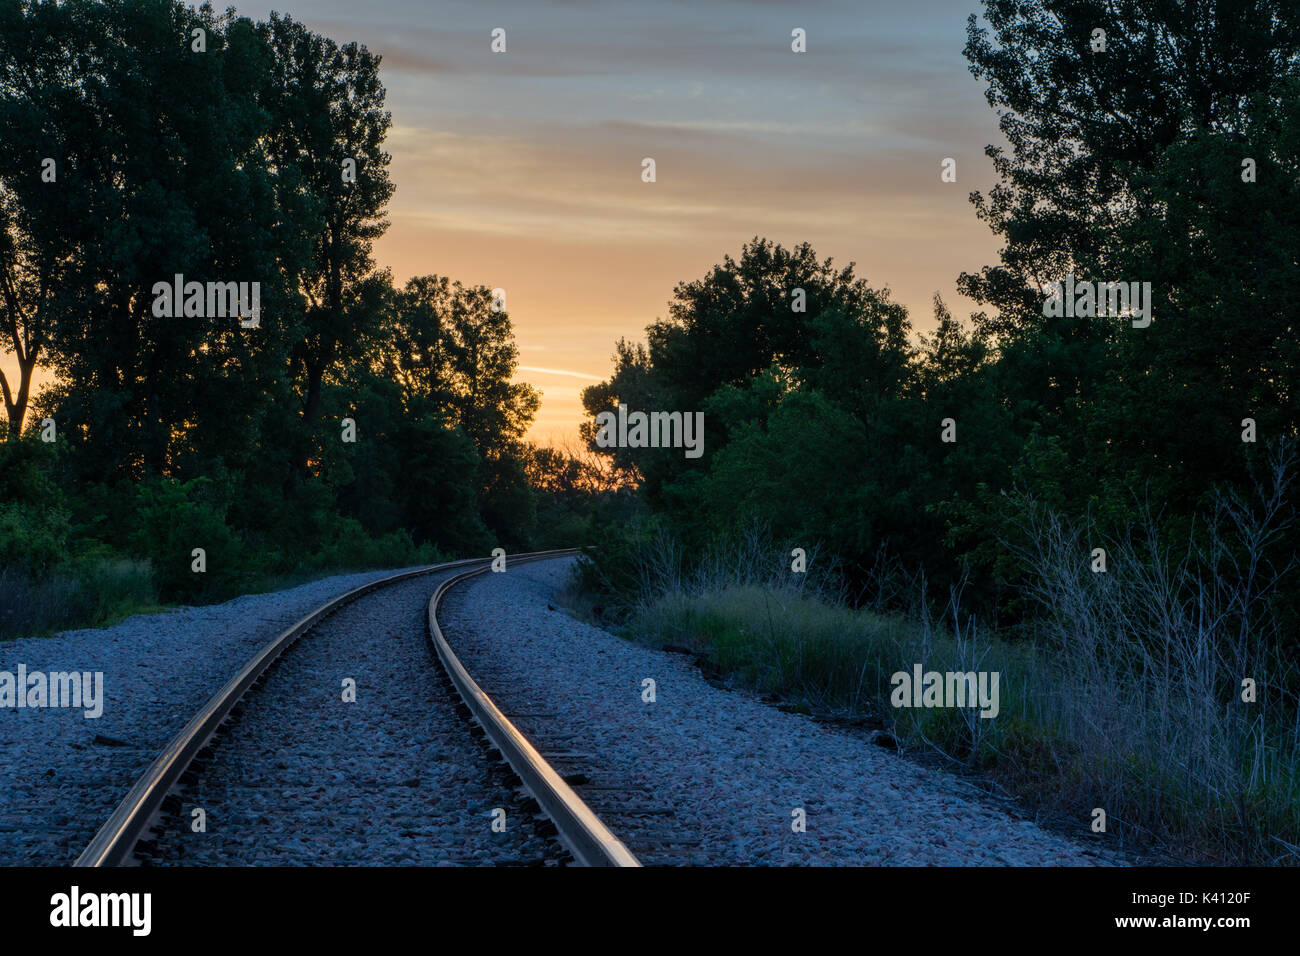 Sunrise in central Iowa over traintracks. - Stock Image